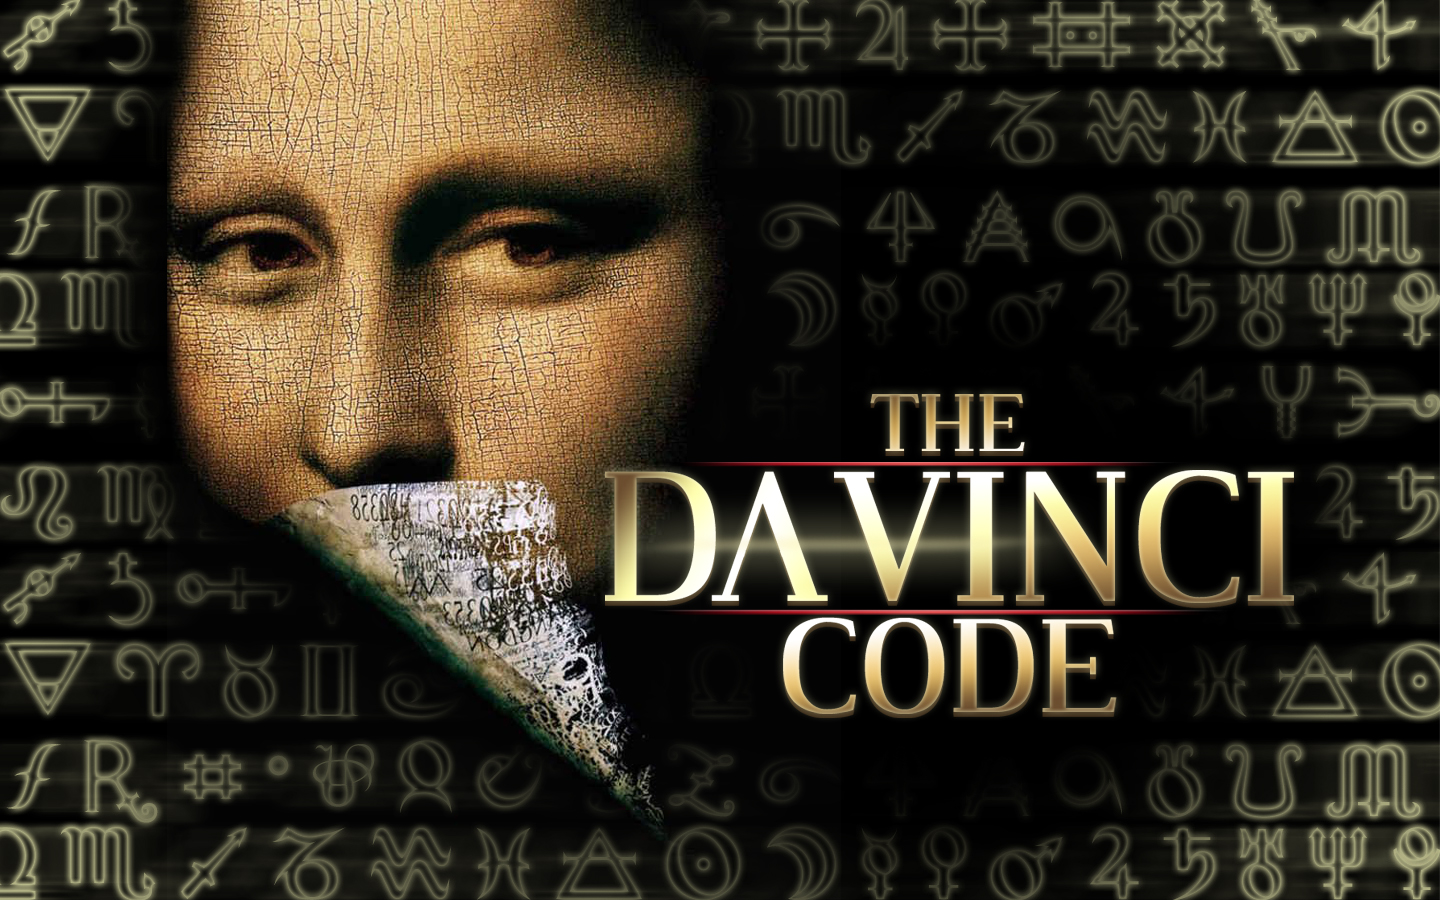 the da vinci code controversy book banning Michael medved on the da vinci code the da vinci code book and movie constitute a direct assault on christianity, but there are three powerful reasons that even non-christians should reject this pop culture phenomenon.